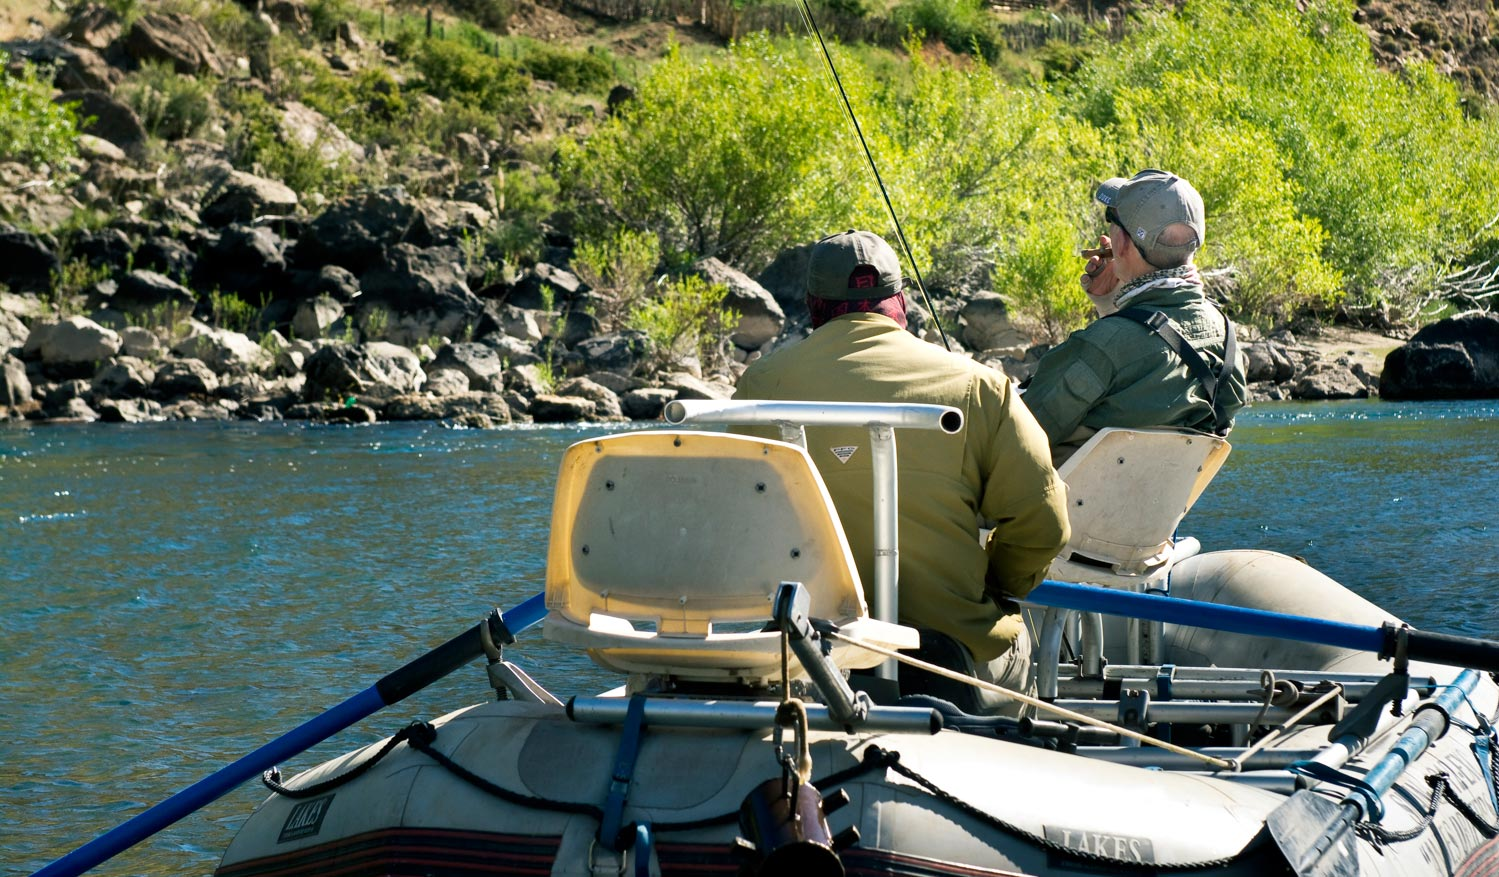 The geezer hatch fly fishing gink and gasoline how for Hatch fly fishing